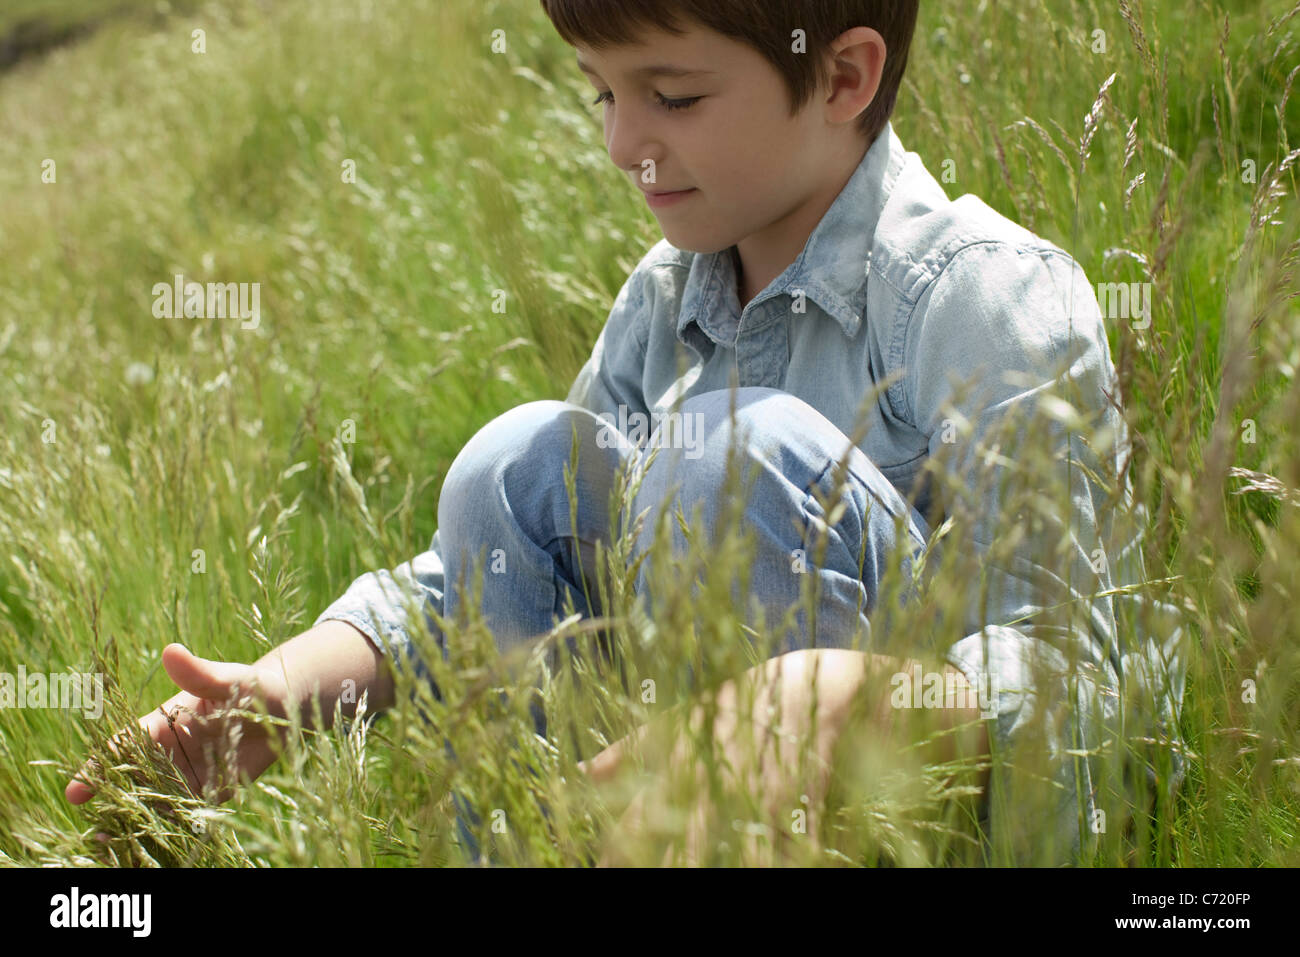 Boy playing with grass in field - Stock Image